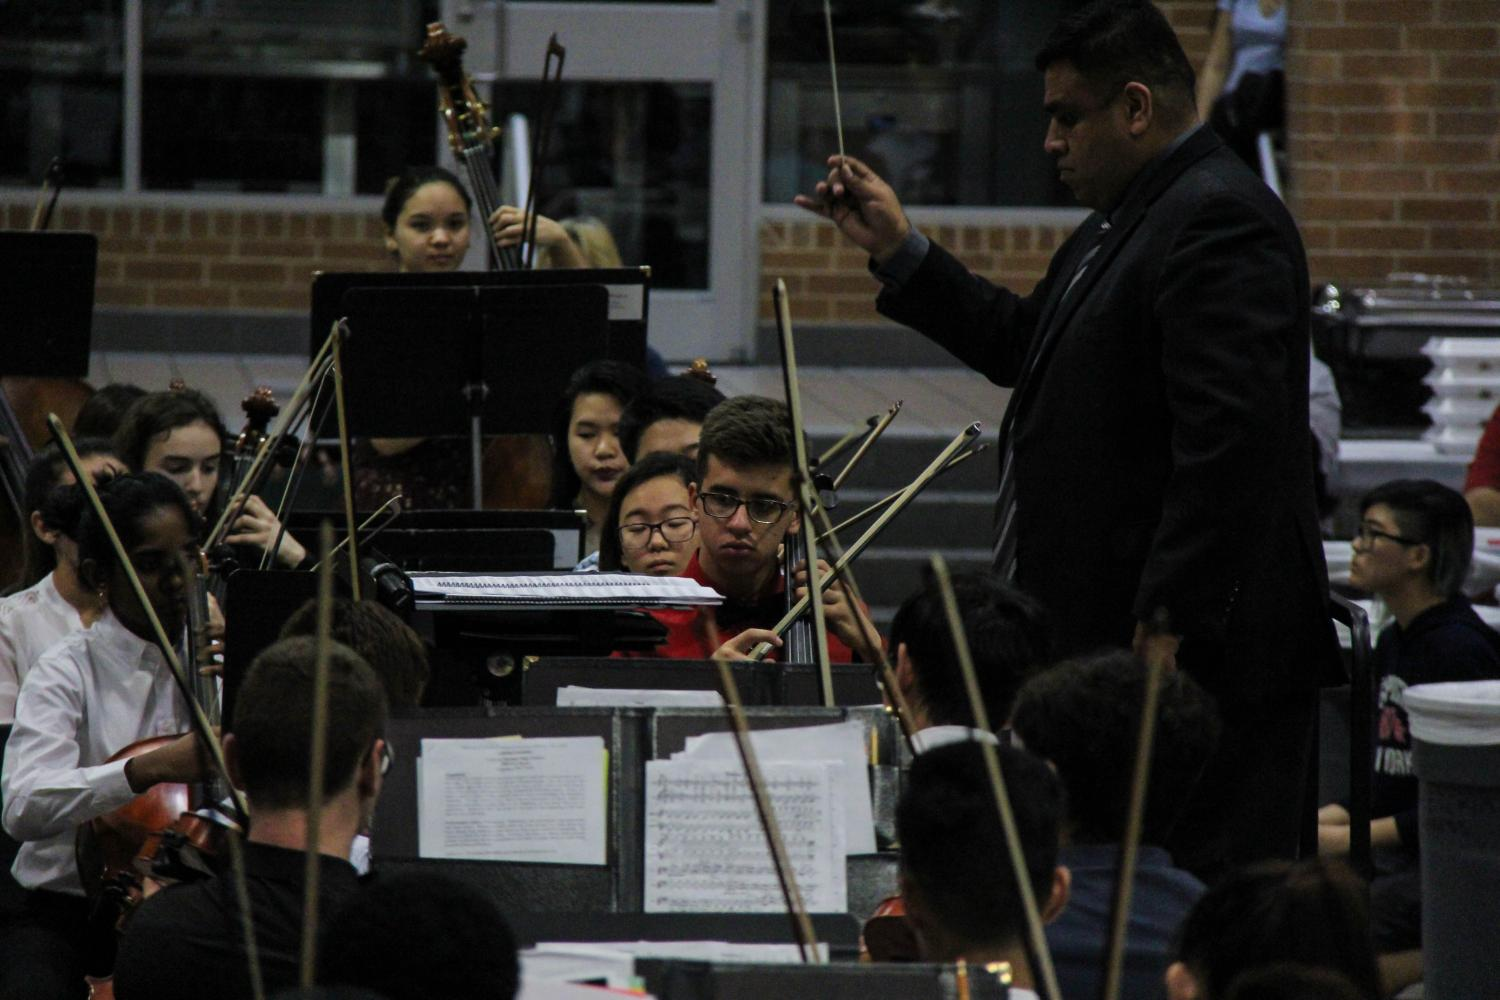 Director of Bands Armando Robledo conducts the Symphony Orchestra.